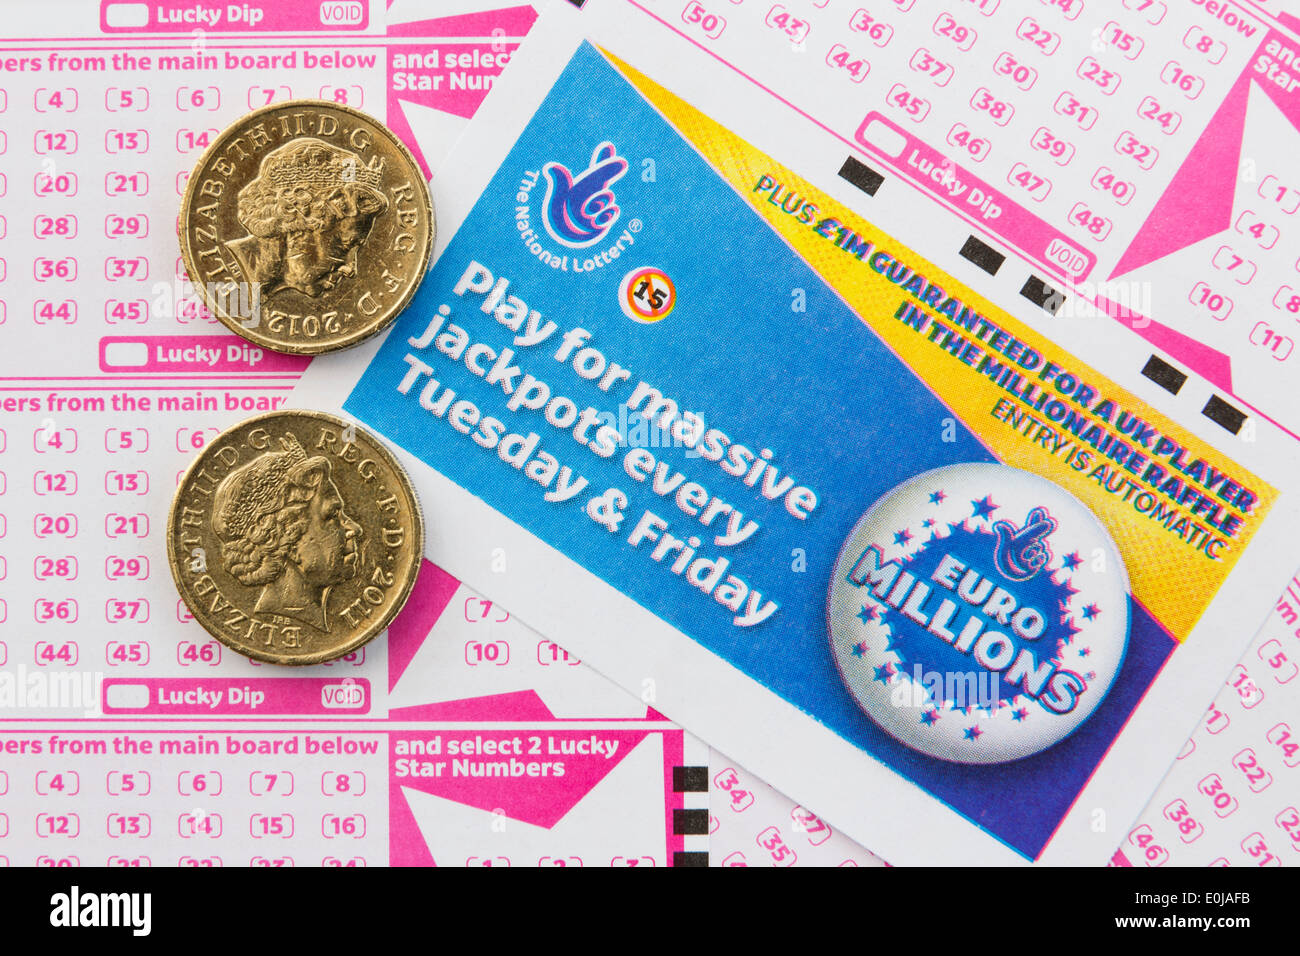 UK National Lottery Euro Millions payslips with number boards for selecting numbers and two £1 coins from above. Stock Photo